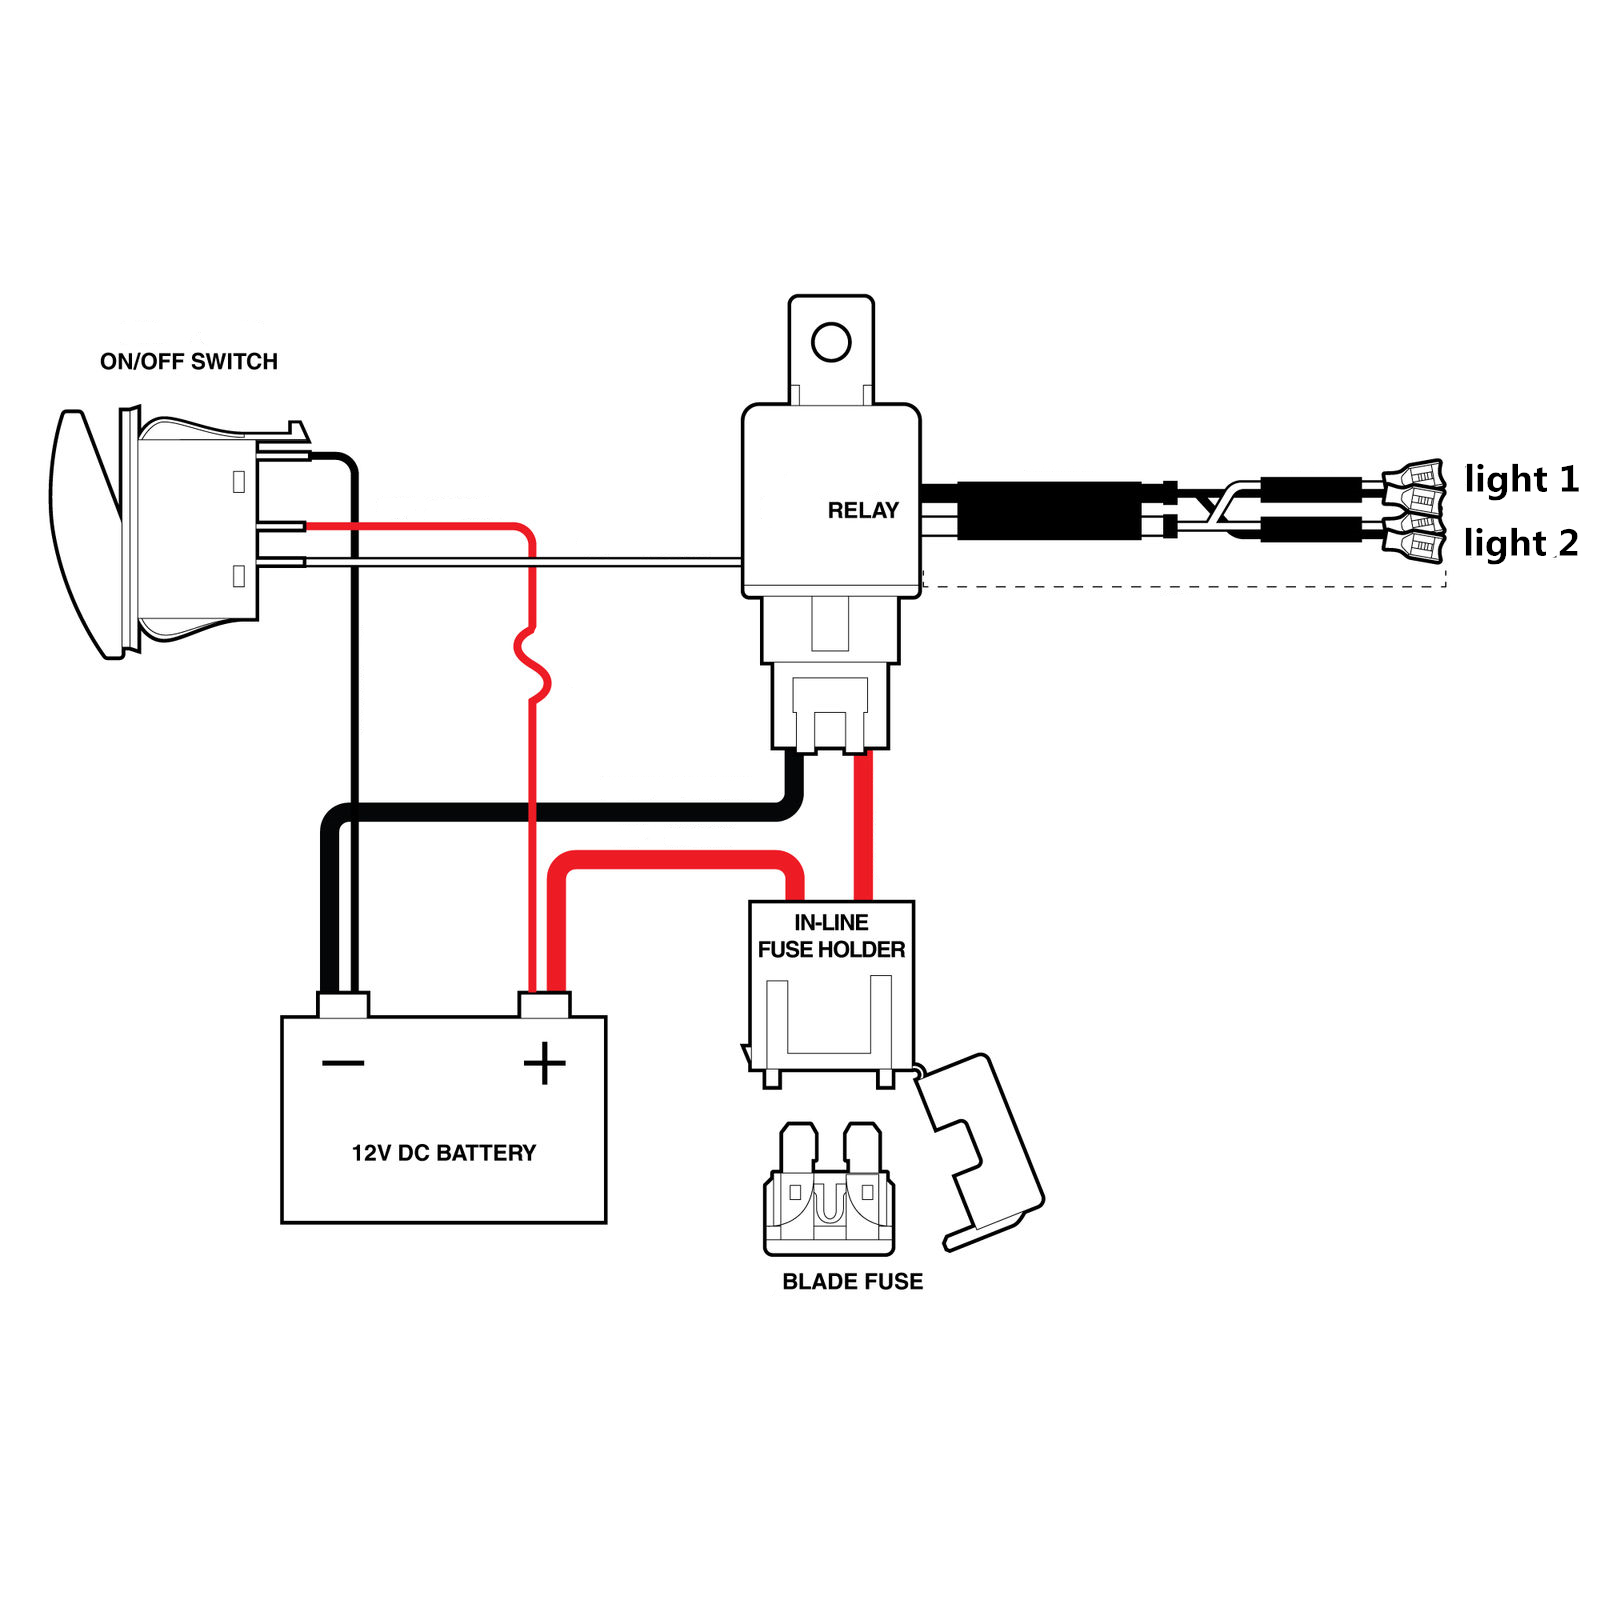 12 volt lighted pull switch wiring diagram database. Black Bedroom Furniture Sets. Home Design Ideas